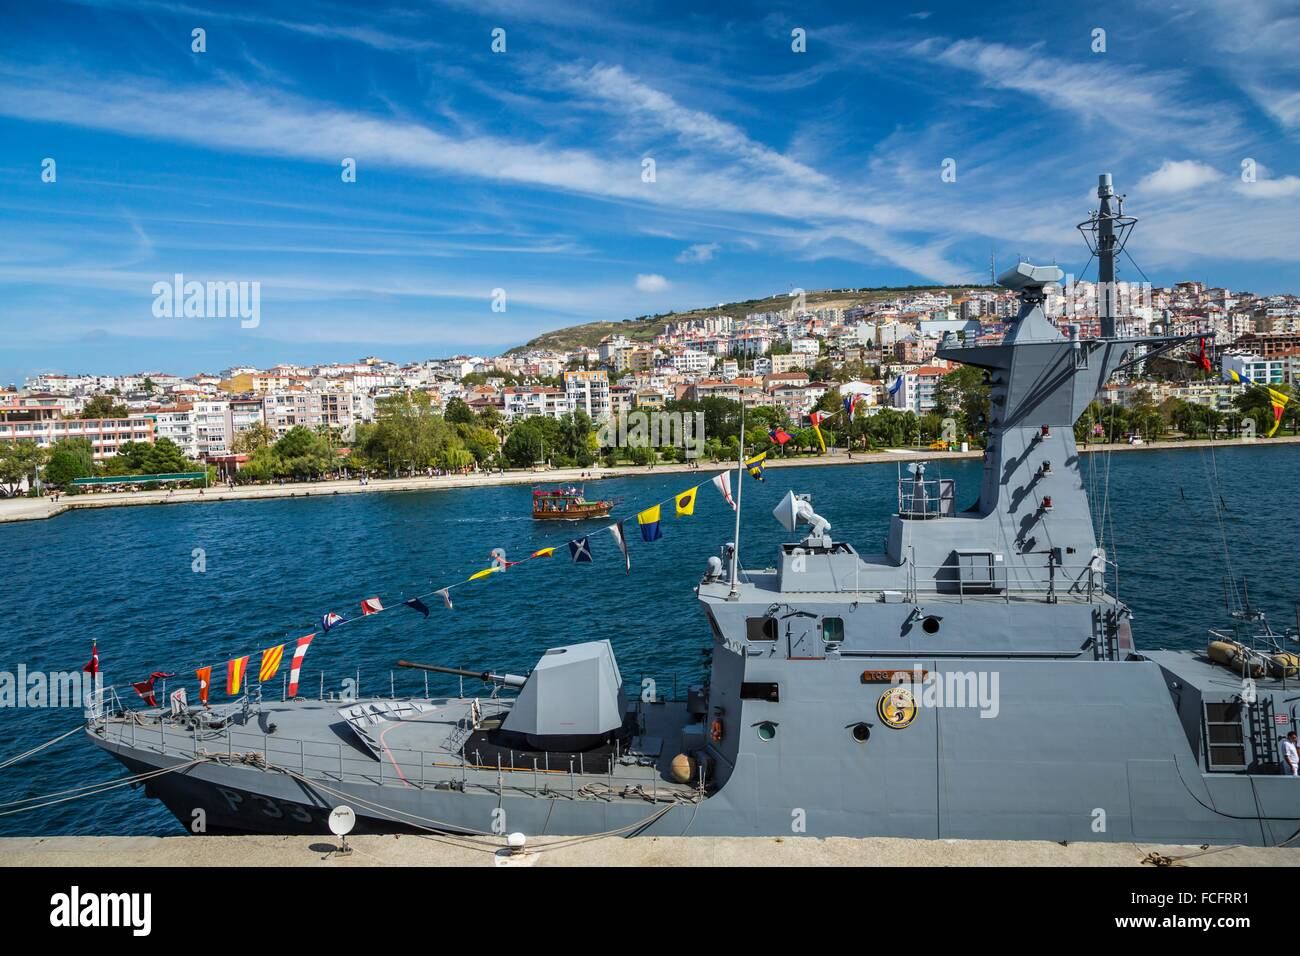 A Turkish military vessel in the Black Sea port city of Sinop, Turkey. - Stock Image